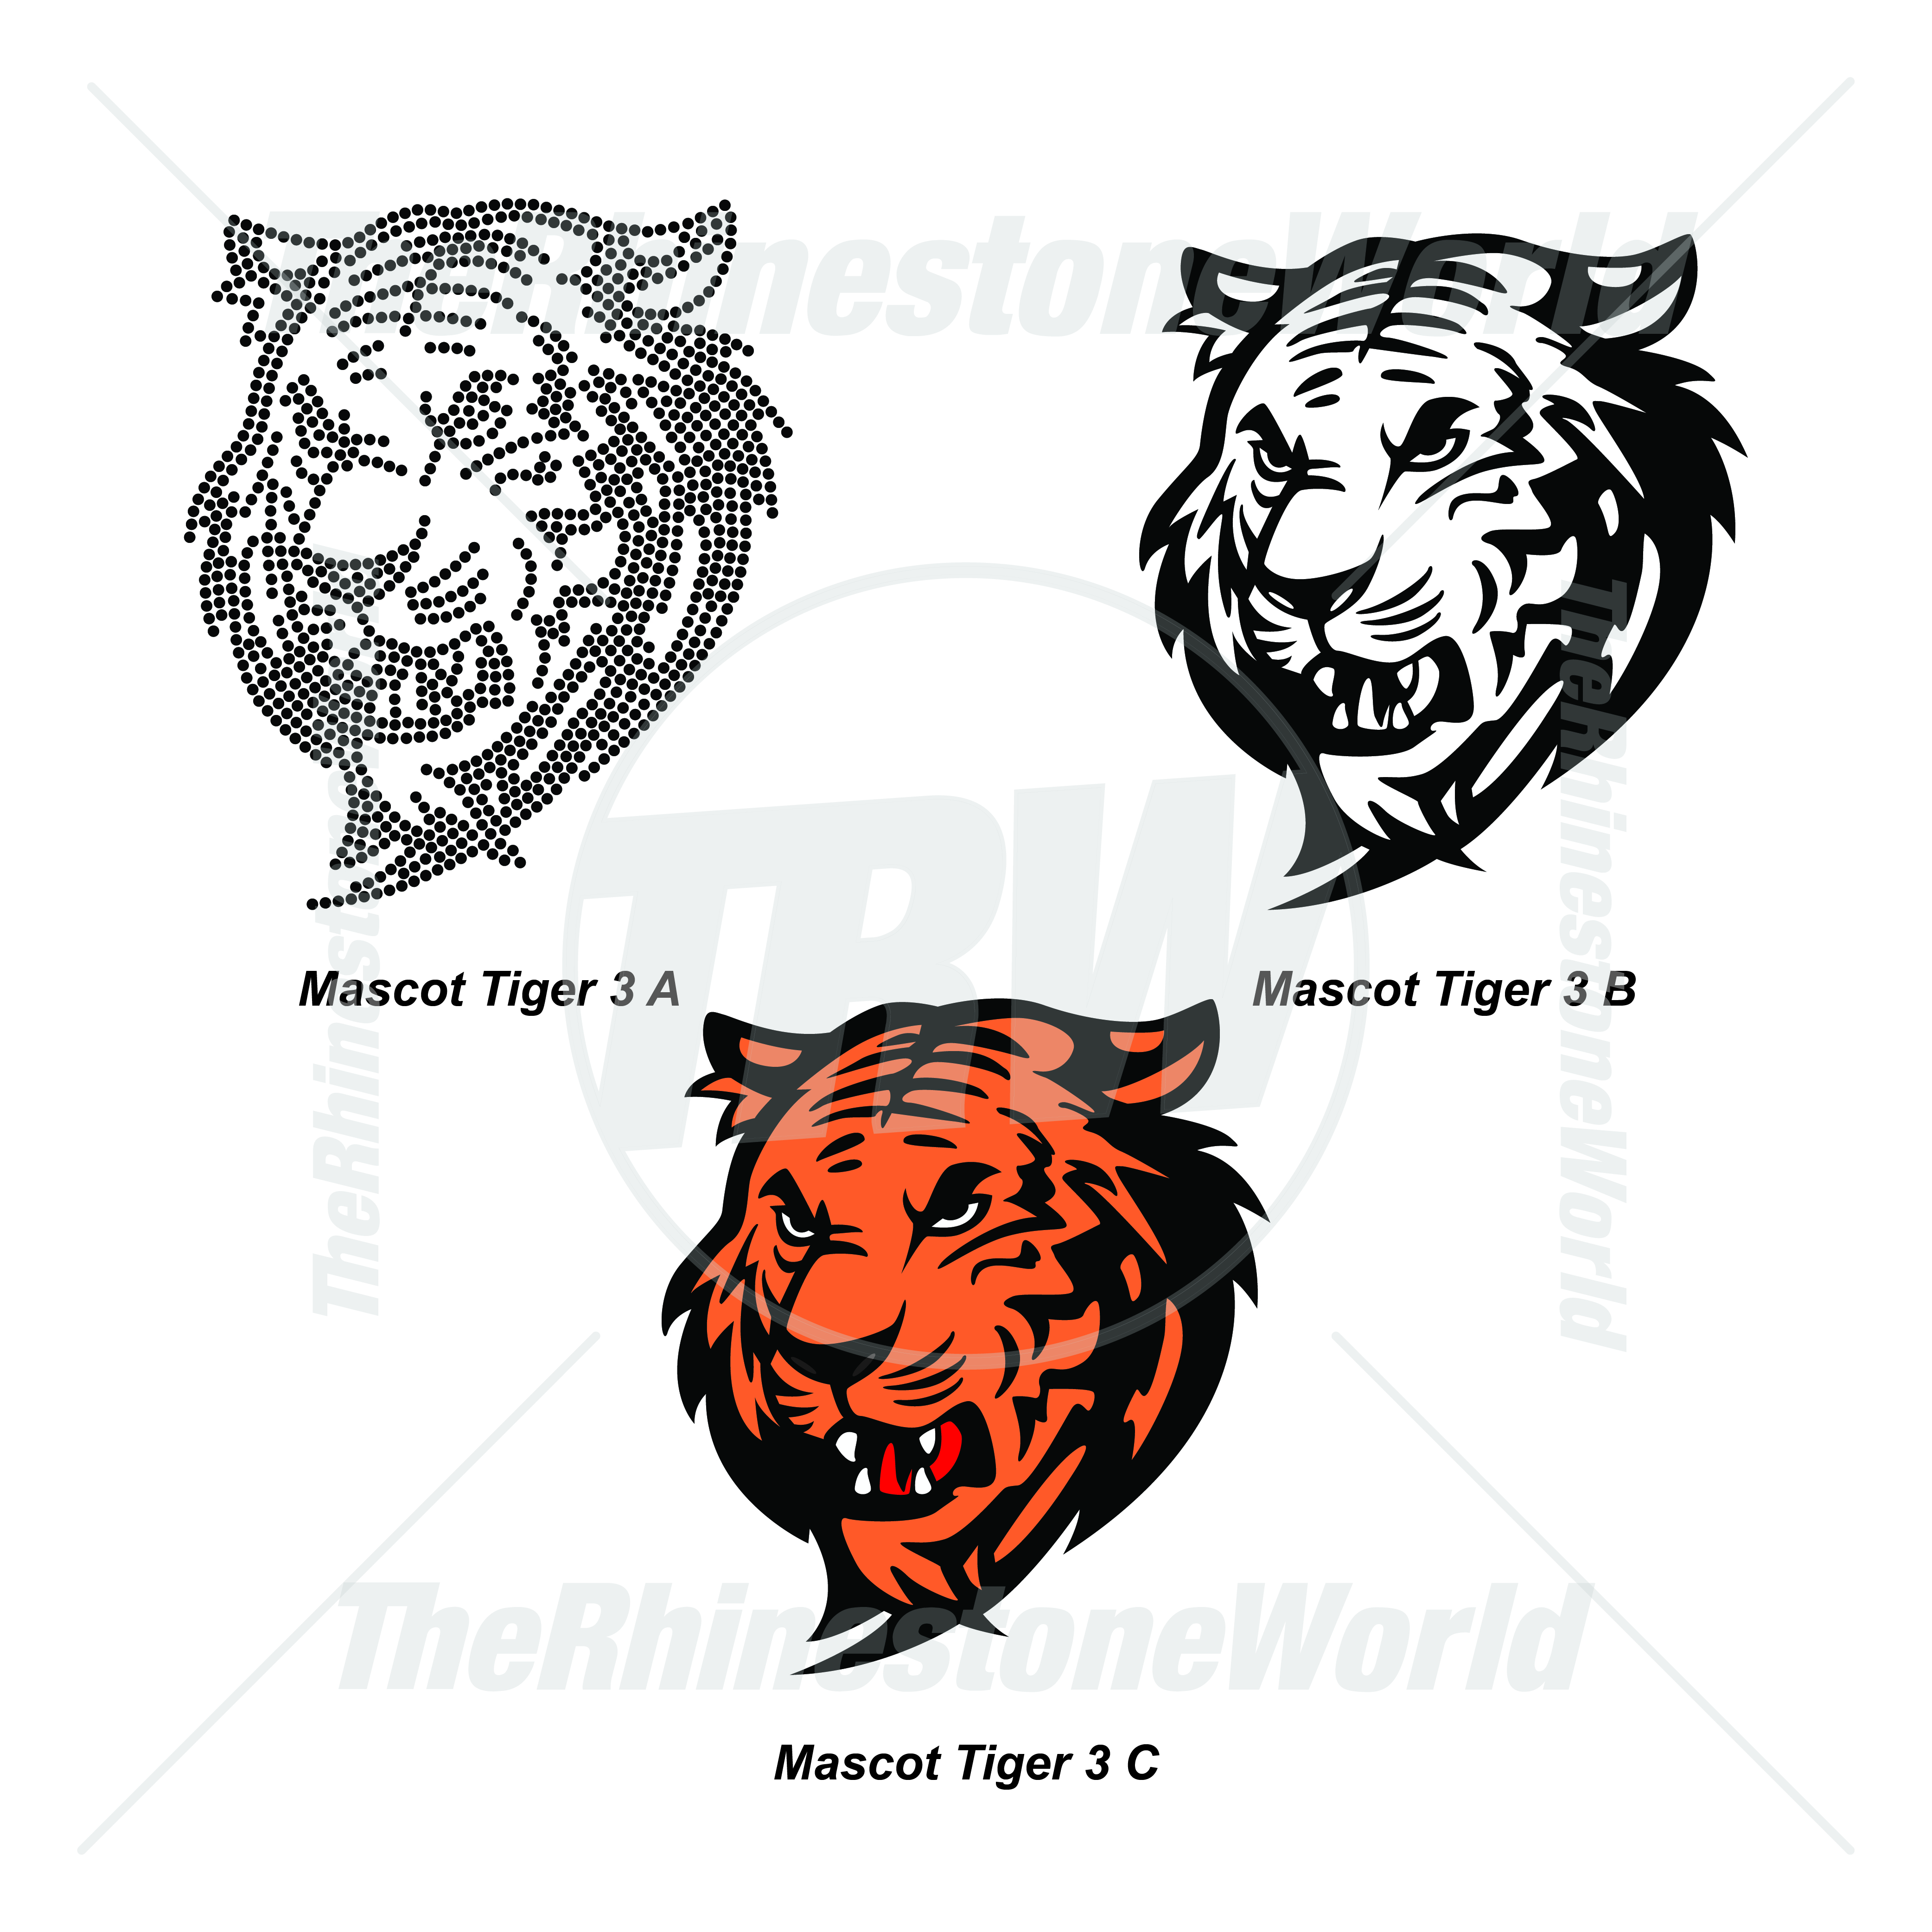 TRW Mascot Tiger 3 - Download